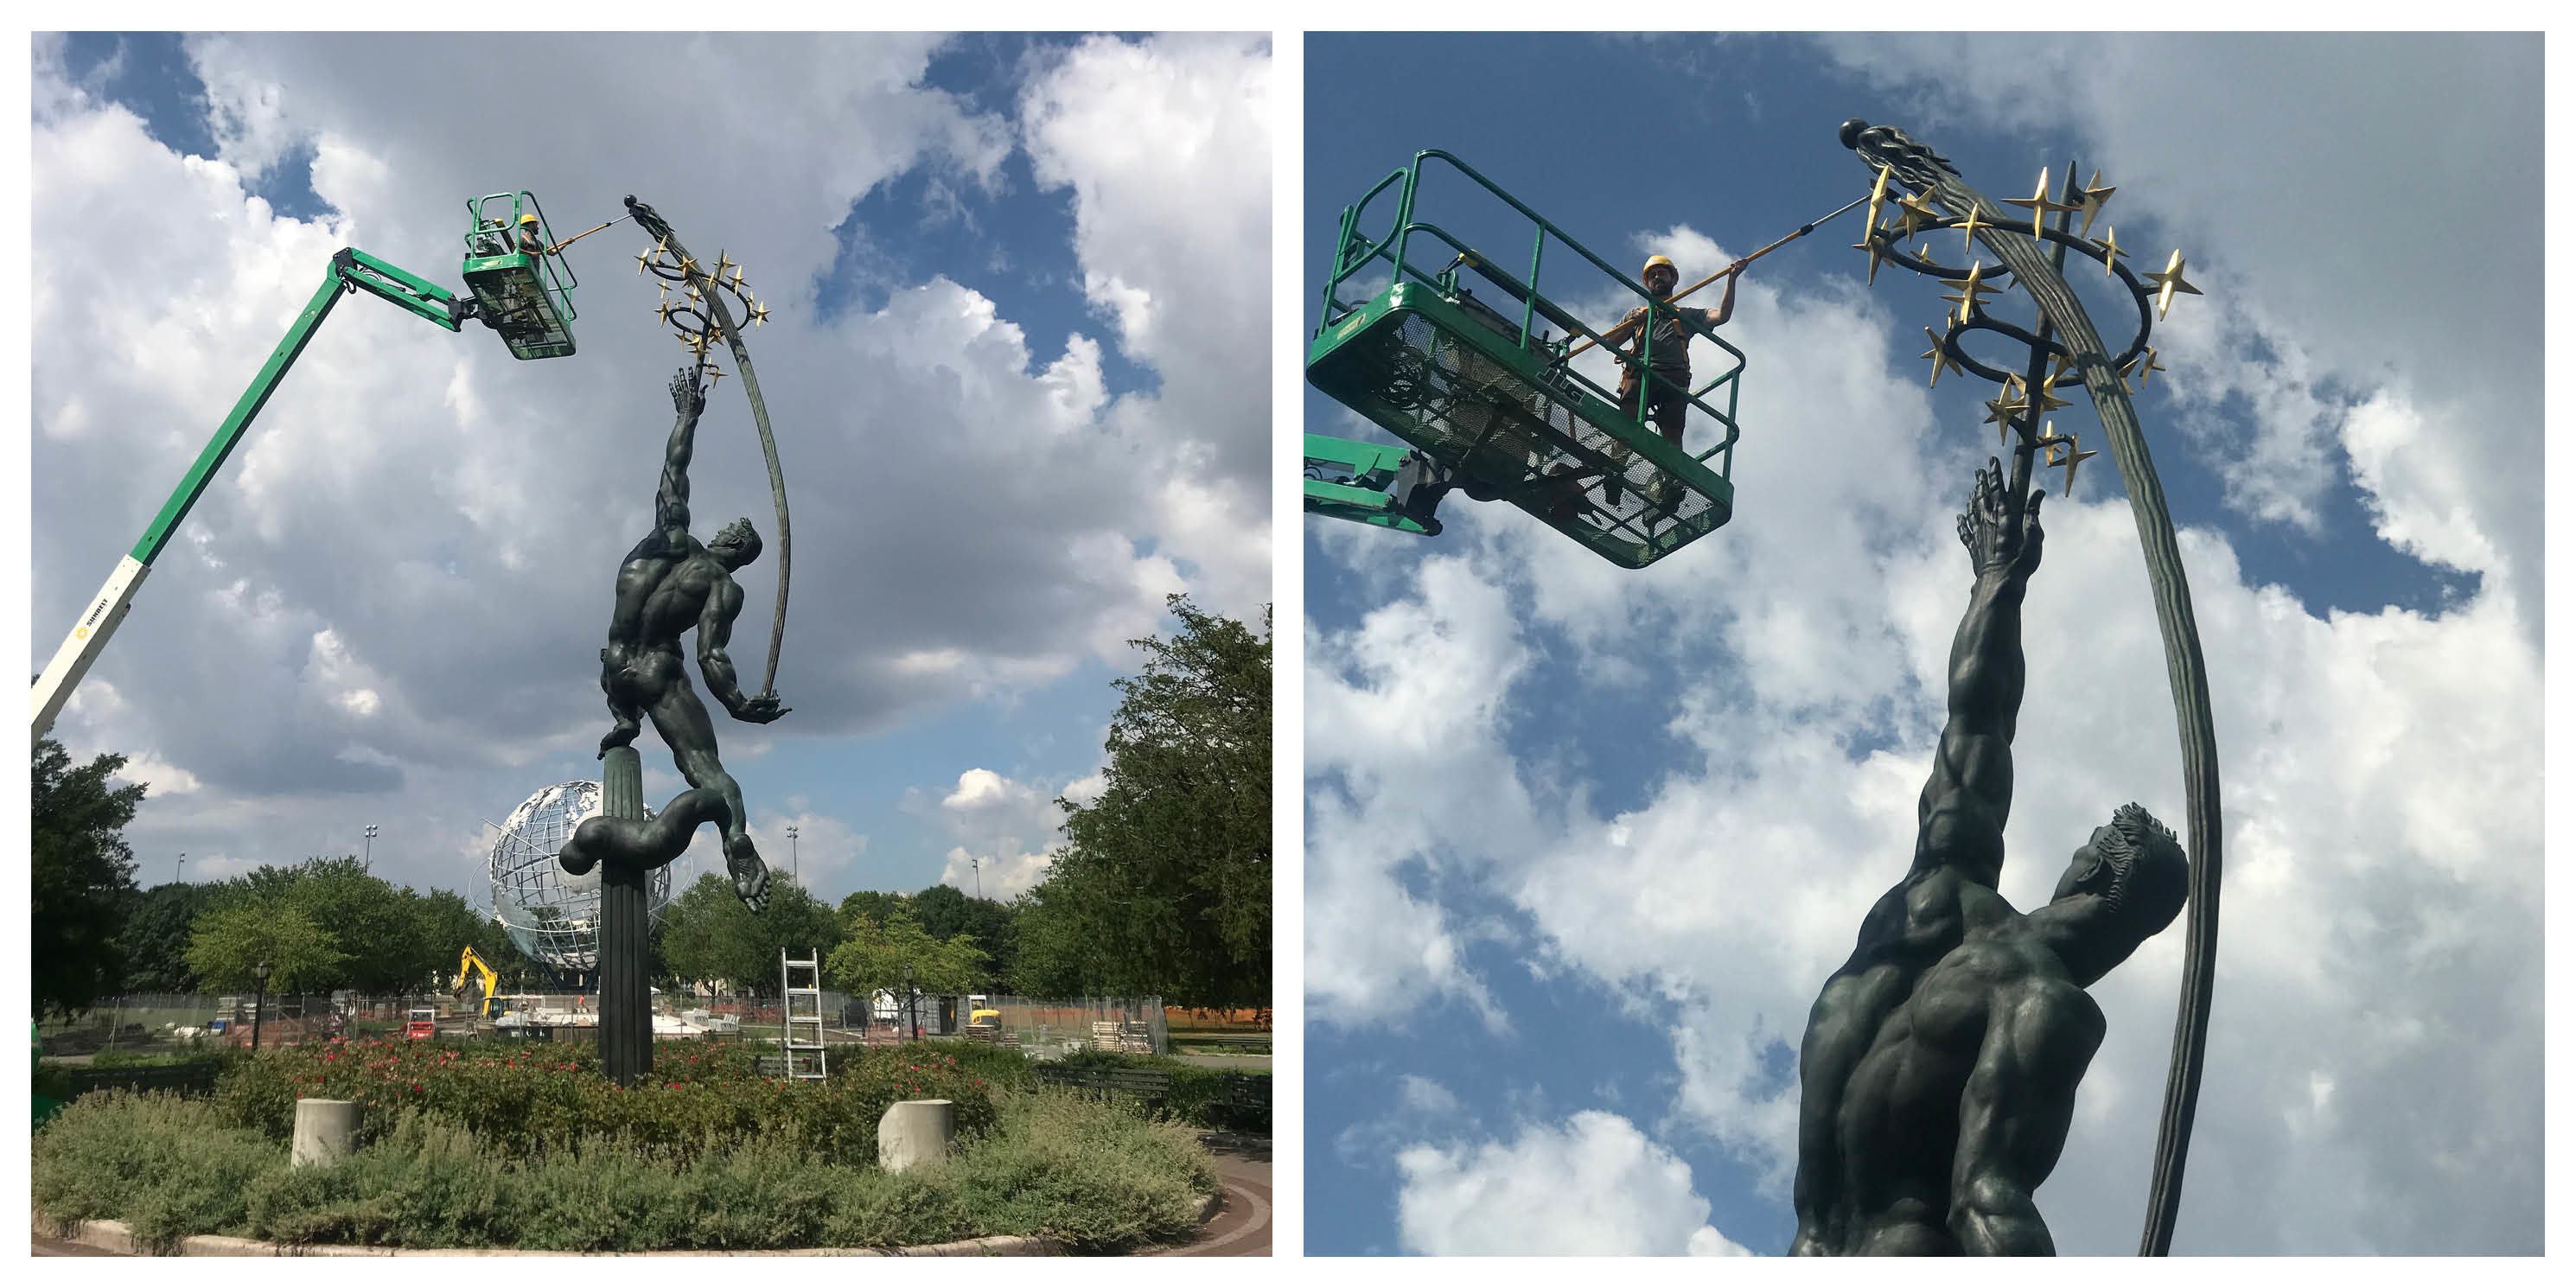 the Rocket Thrower statue before it was restored with a hot wax treatment